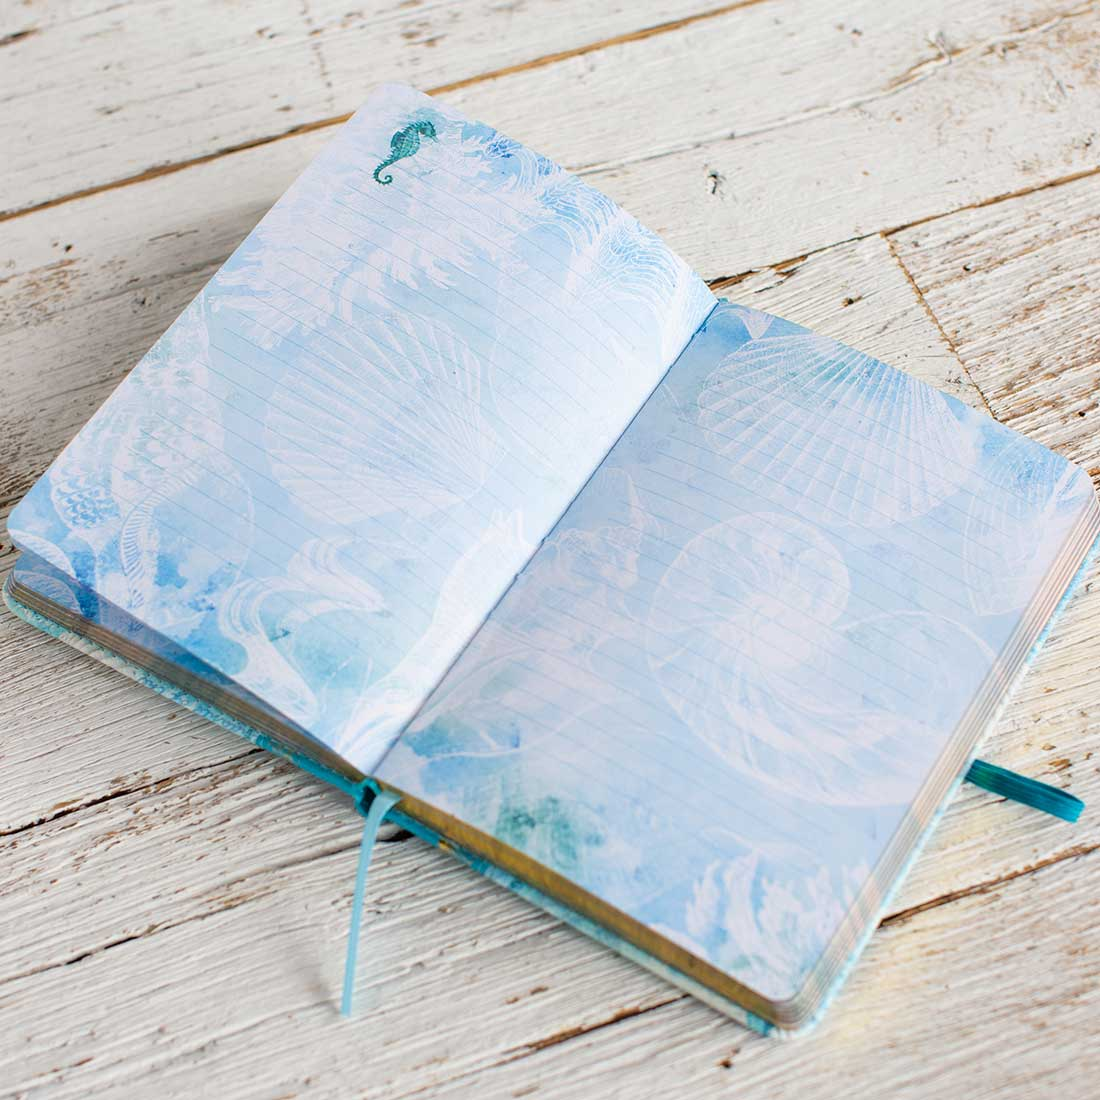 Seashell Embellished Journal